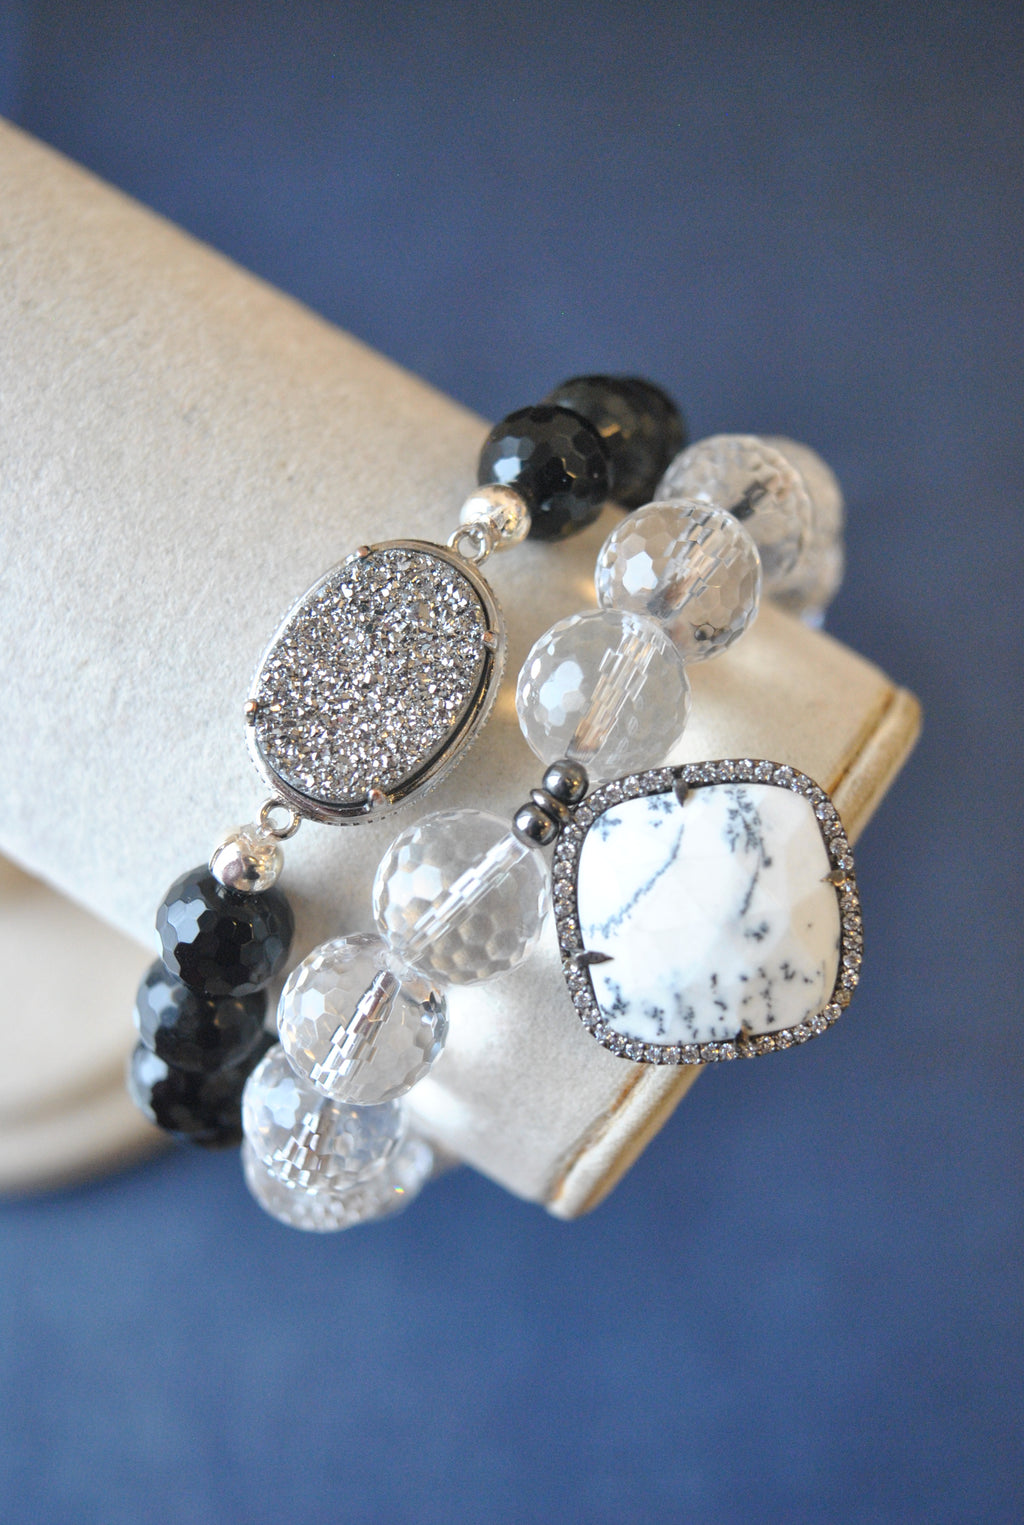 BLACK ONYX AND CRYSTAL QUARTZ BRACELET SET